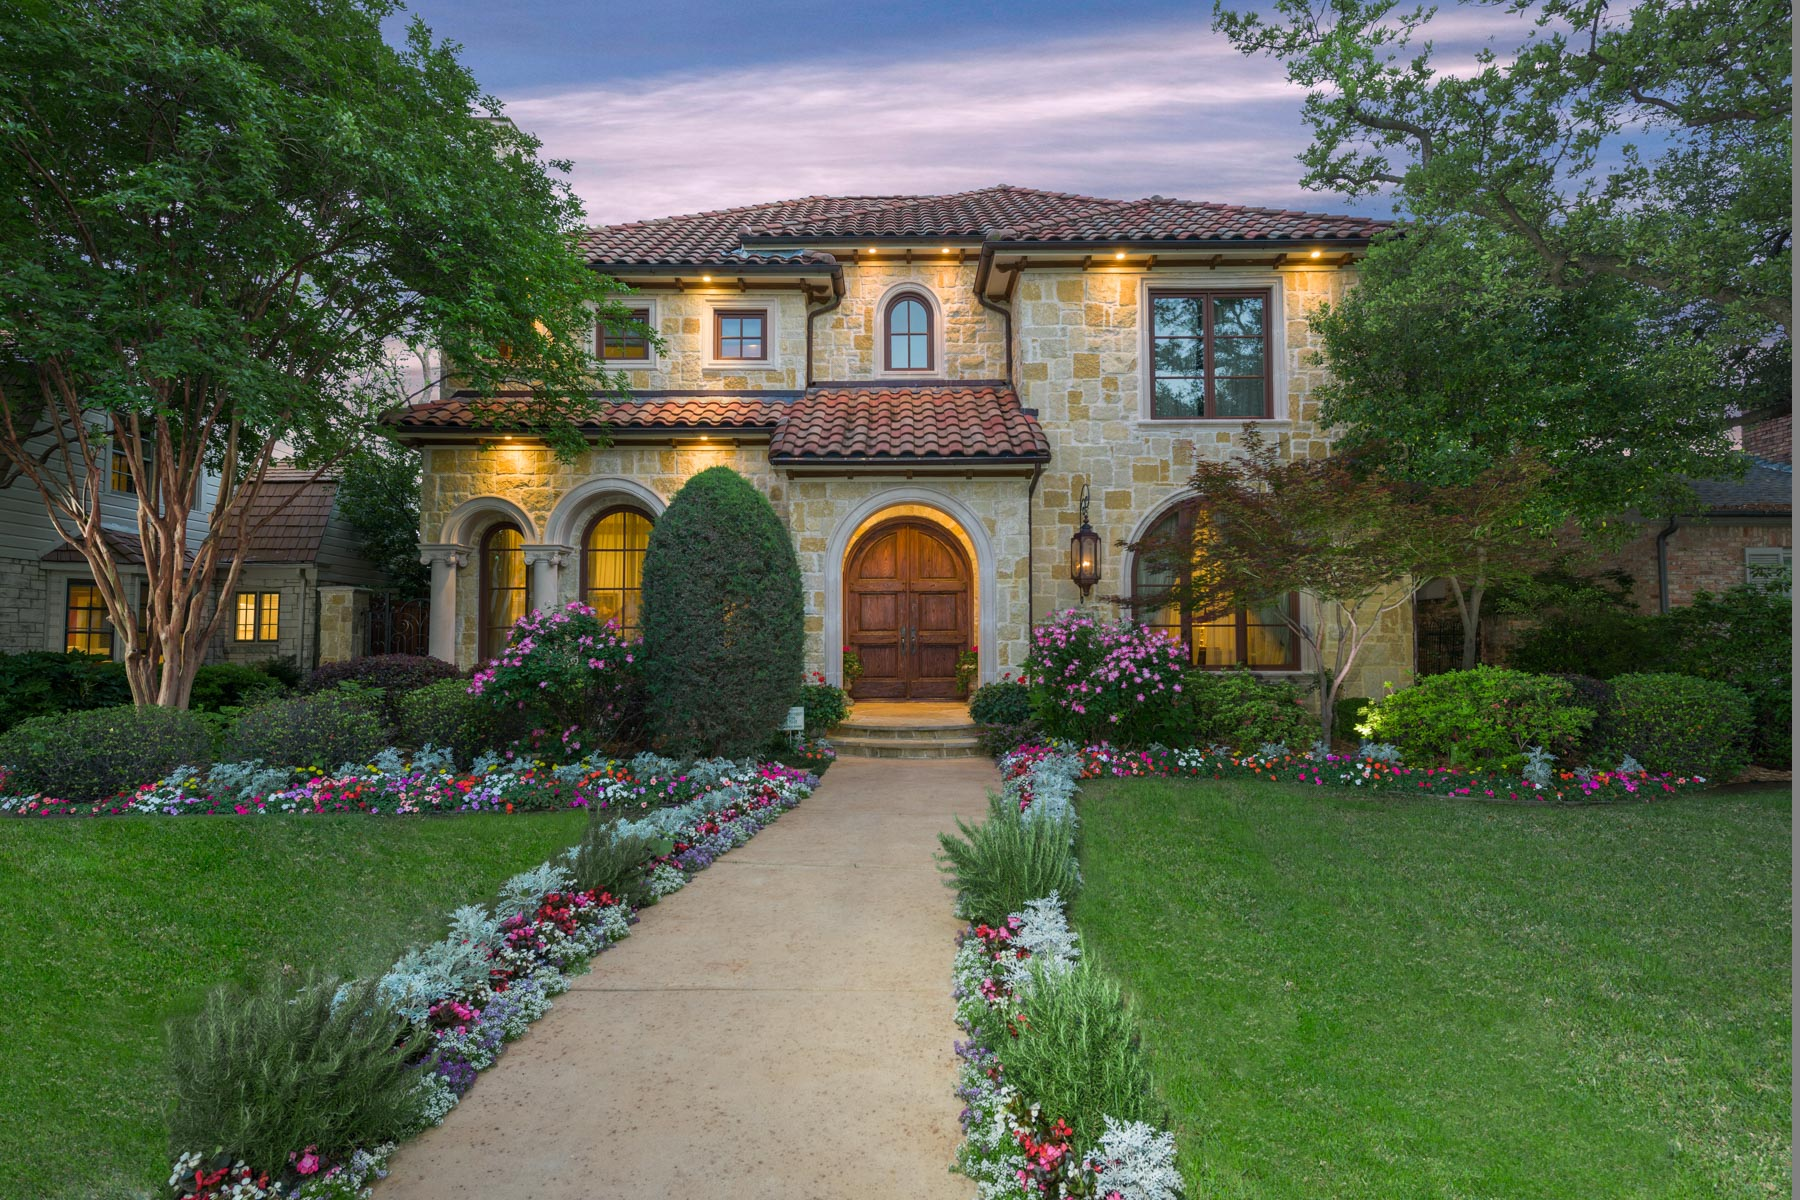 Maison unifamiliale pour l Vente à University Park Mediterranean 3921 Windsor Avenue Dallas, Texas, 75205 États-Unis